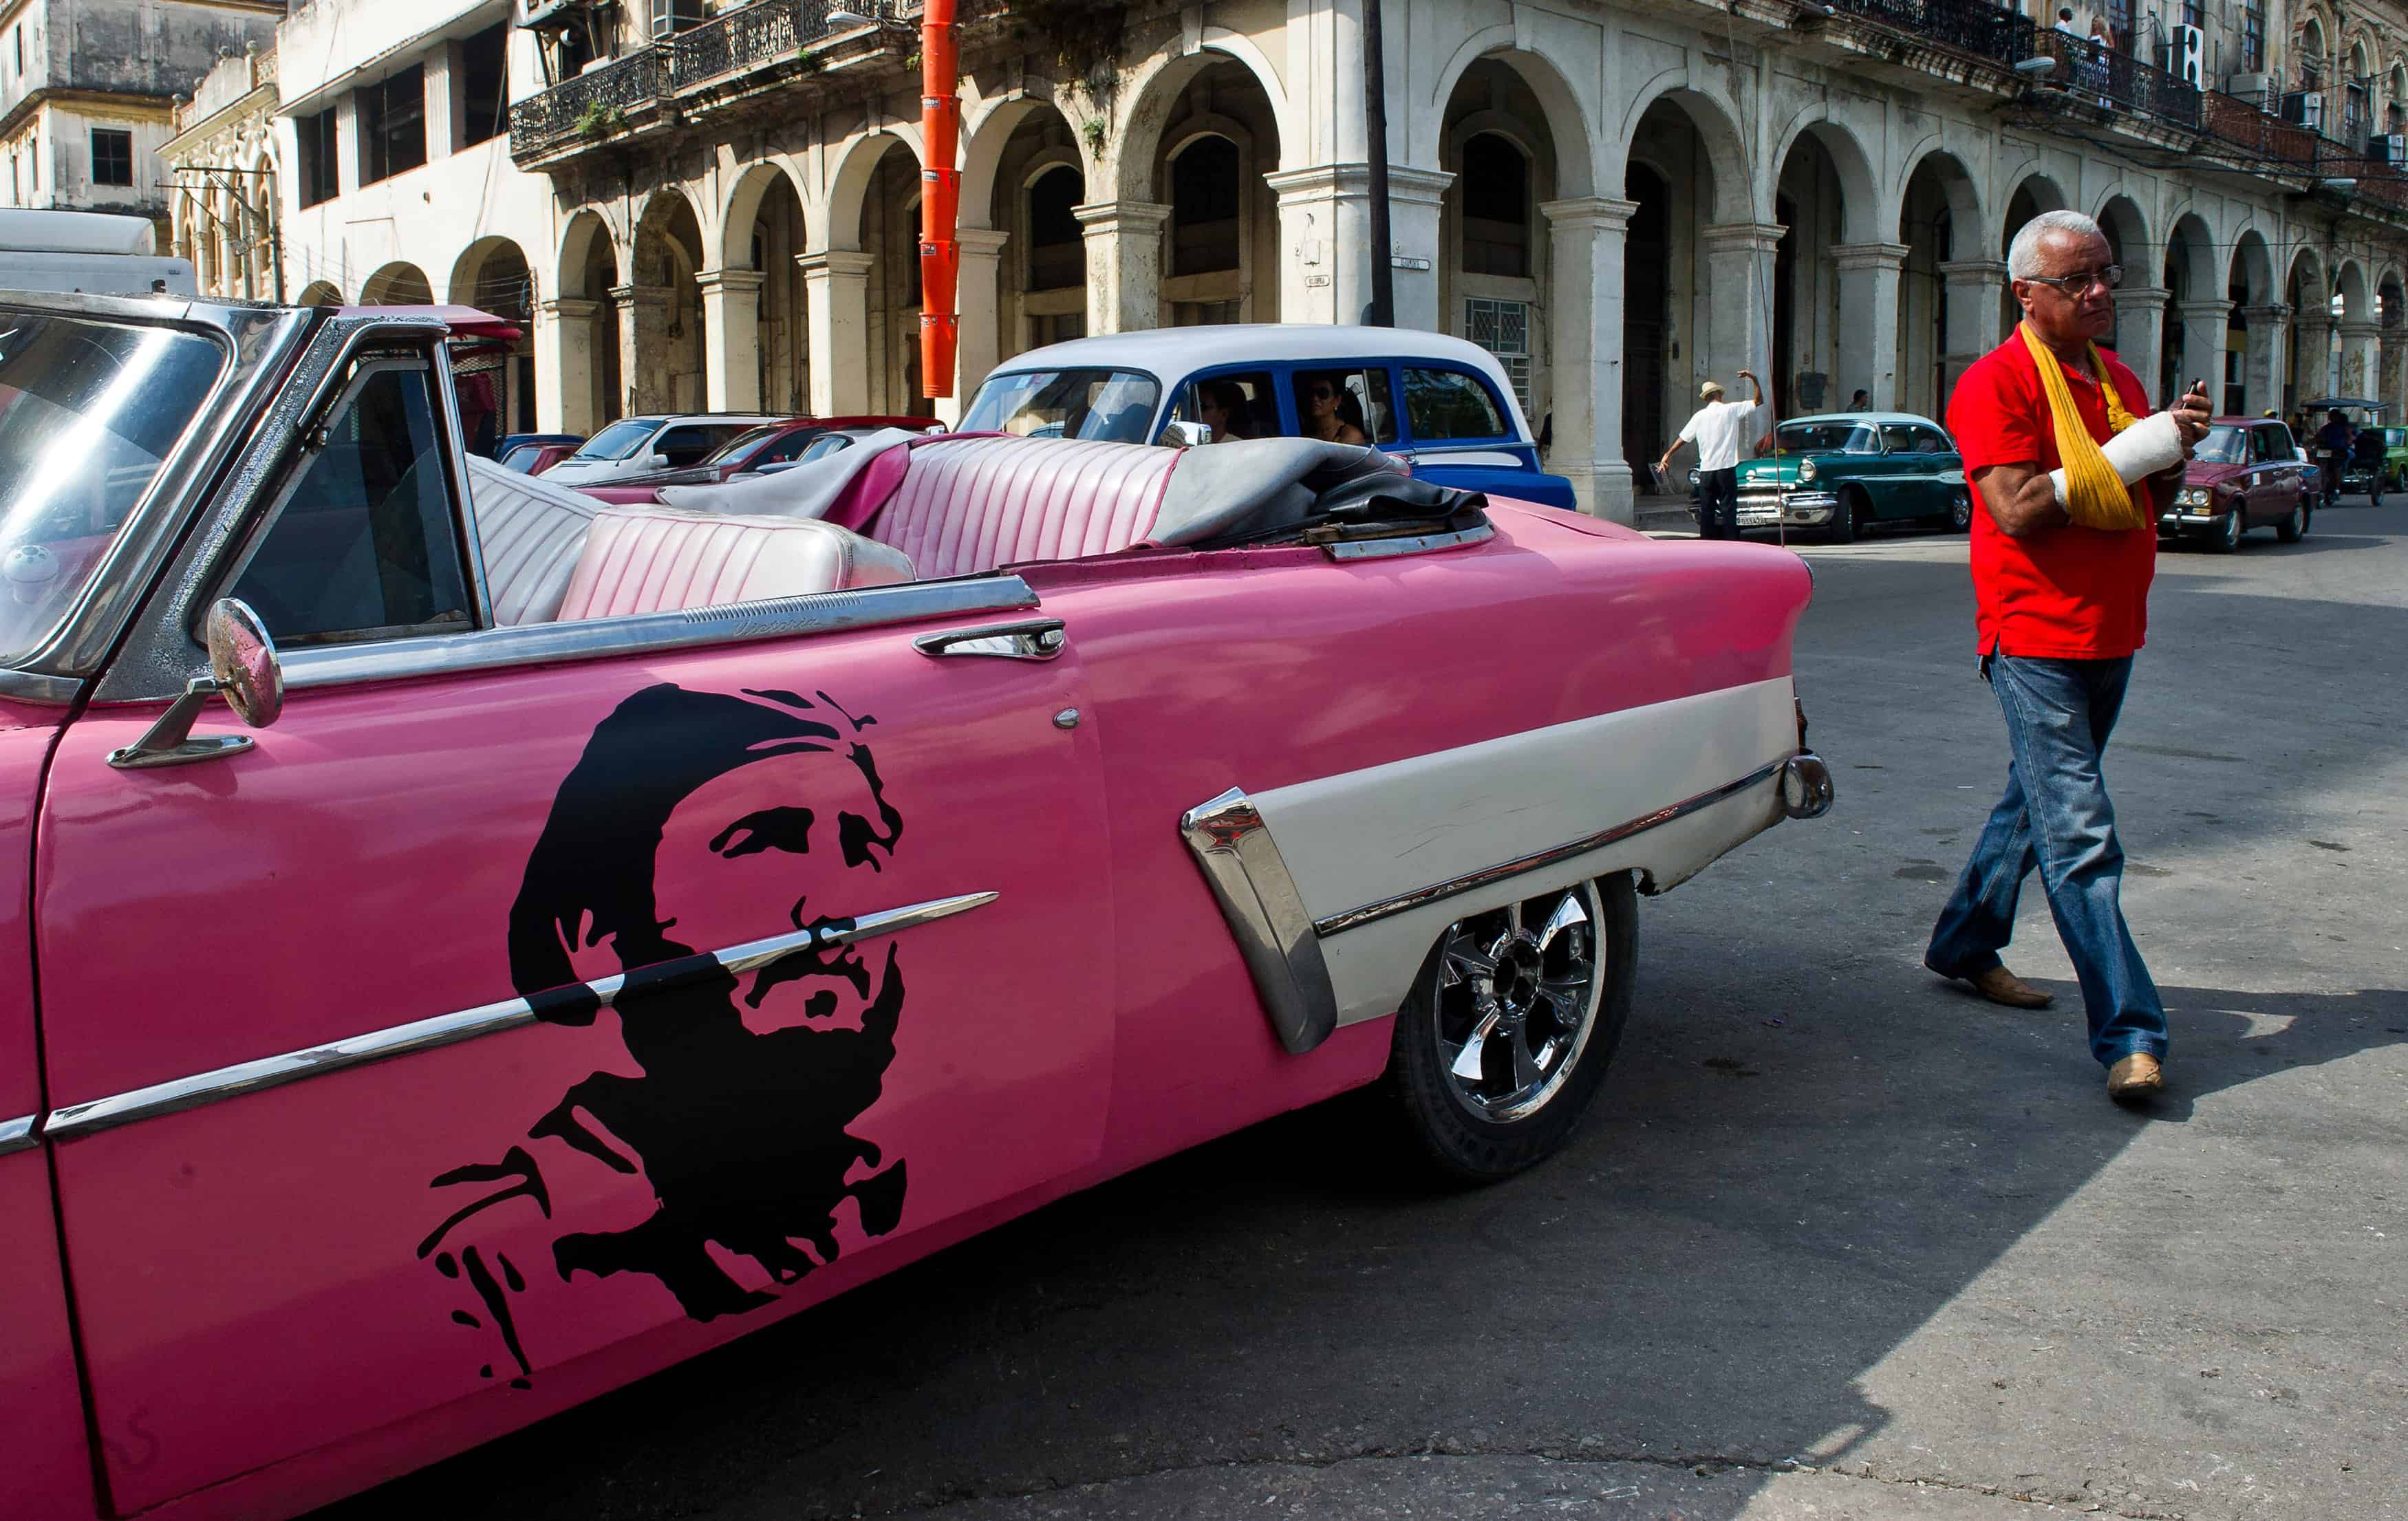 us officials in cuba to discuss embassies the tico times costa rica news travel real estate. Black Bedroom Furniture Sets. Home Design Ideas